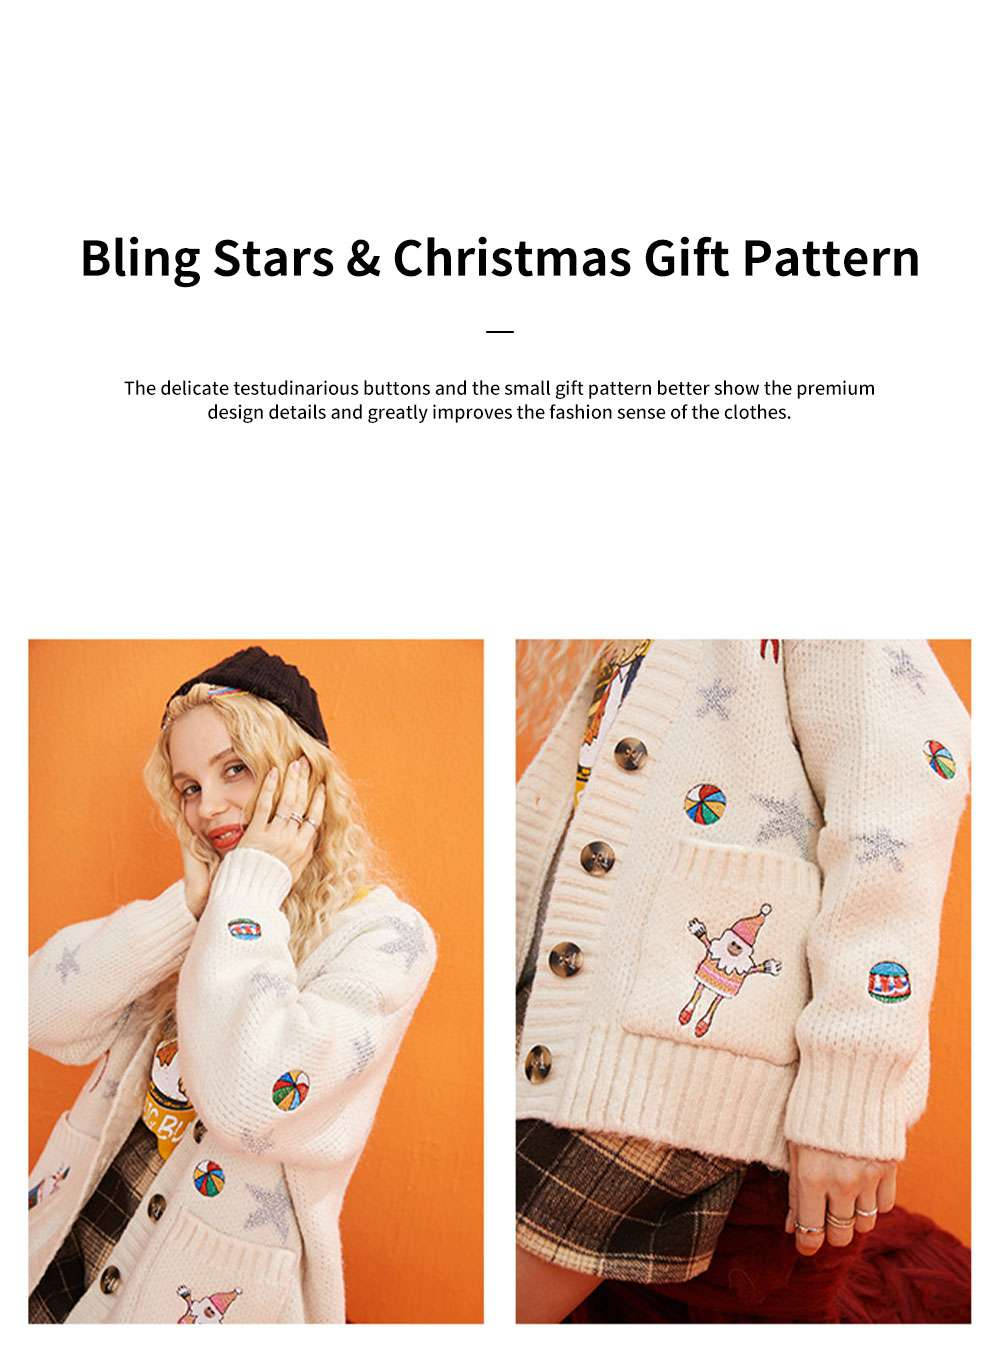 ELFSACK Women's Loose Knit Sweater Fashion Embroidery Print Cardigan Coat with Long Sleeves for Autumn and Winter Christmas Gift 5